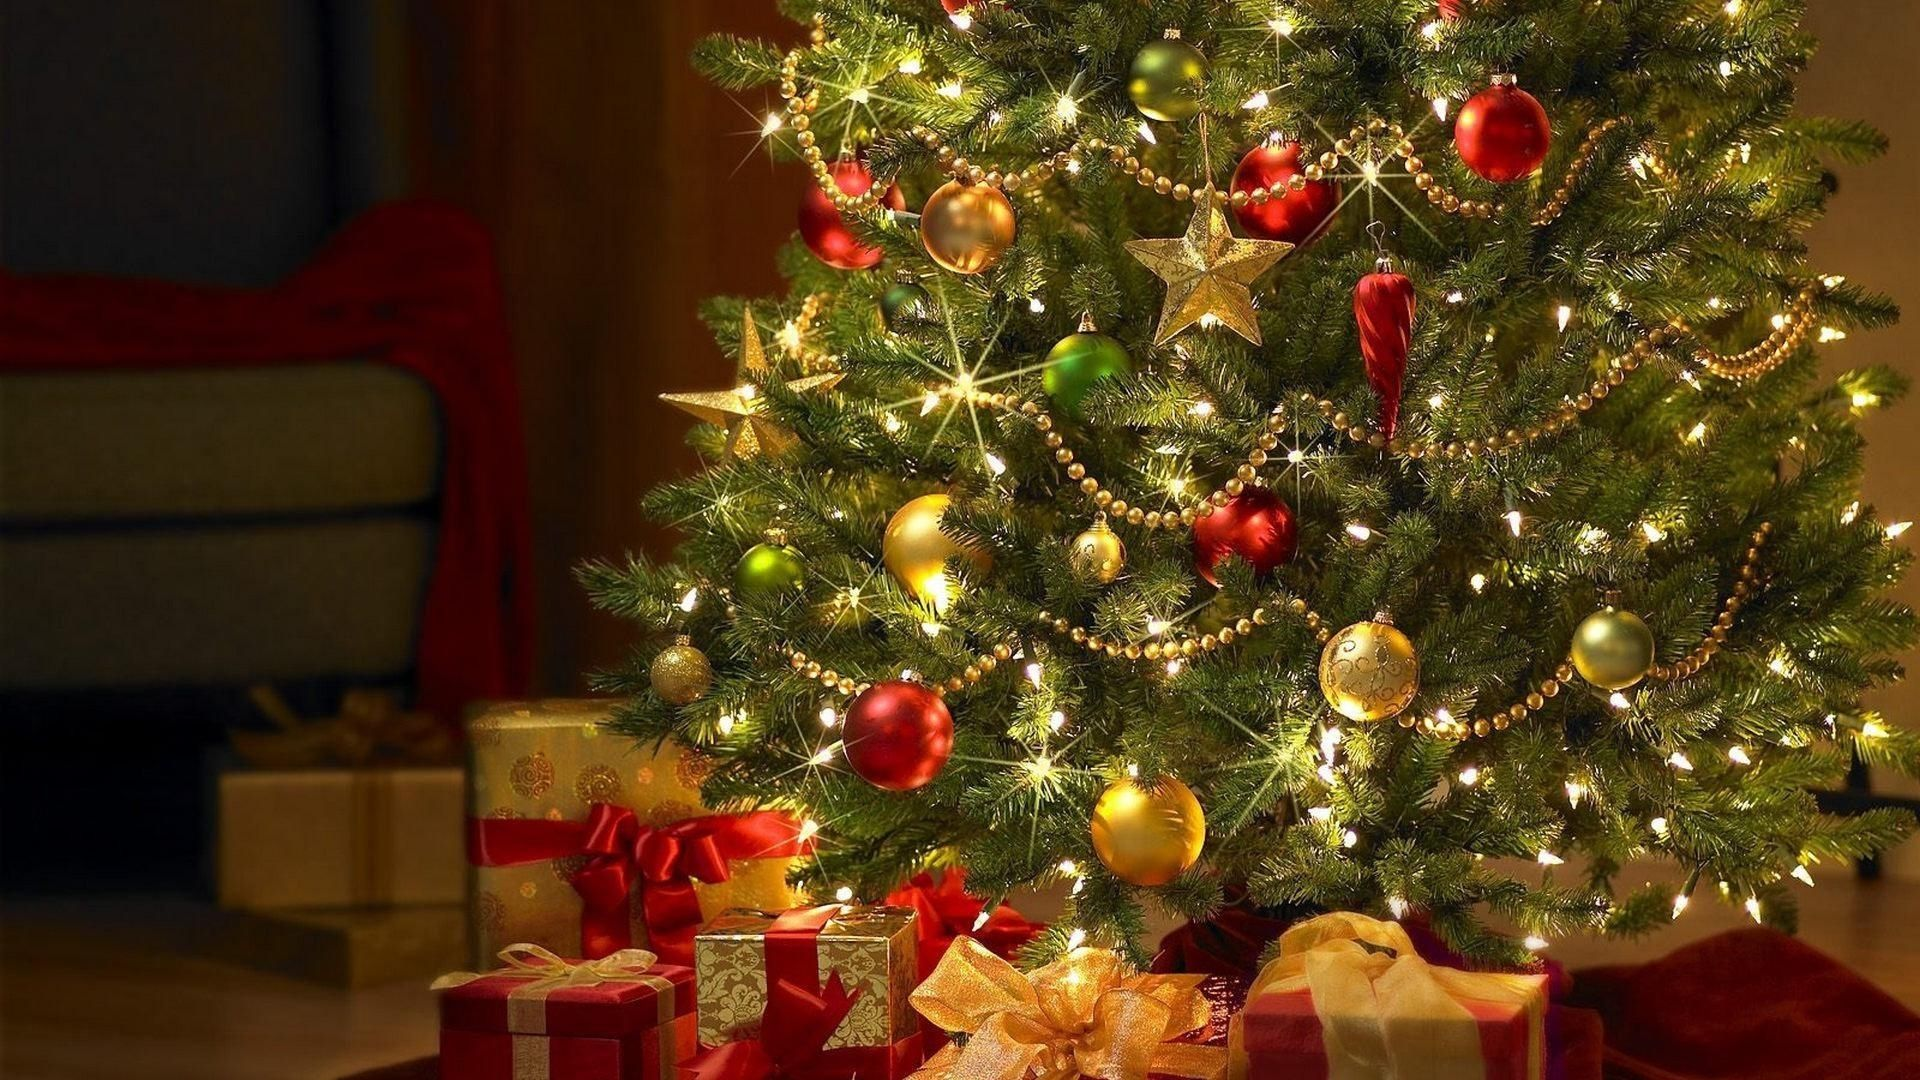 1920x1080 wallpaper christmas new year tree gifts toys garland christmas fragrance christmas tree wallpaper buy christmas tree christmas tree wallpaper